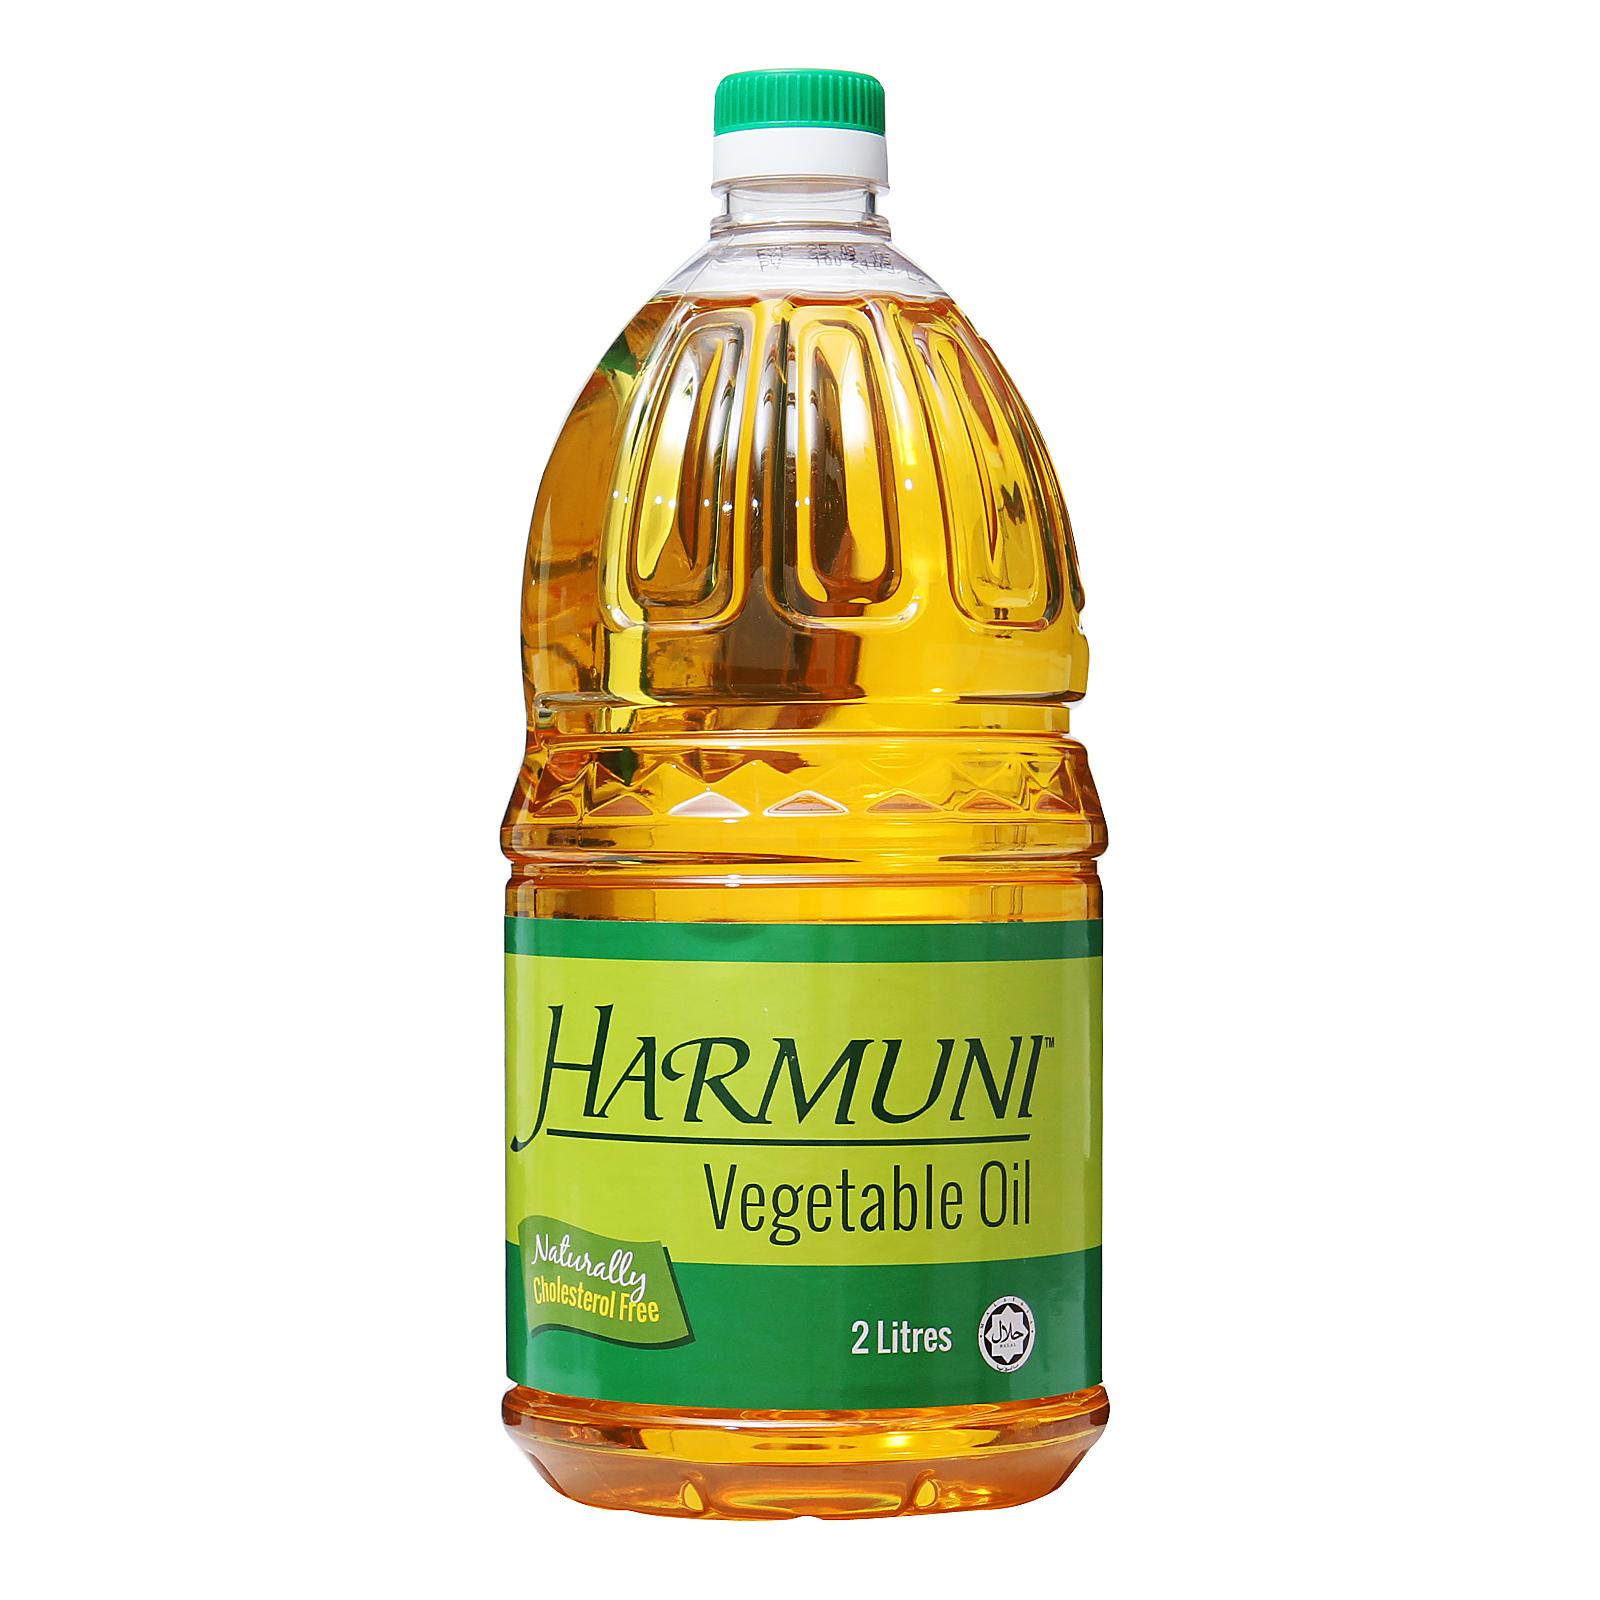 Harmuni Vegetable Oil By Redmart.